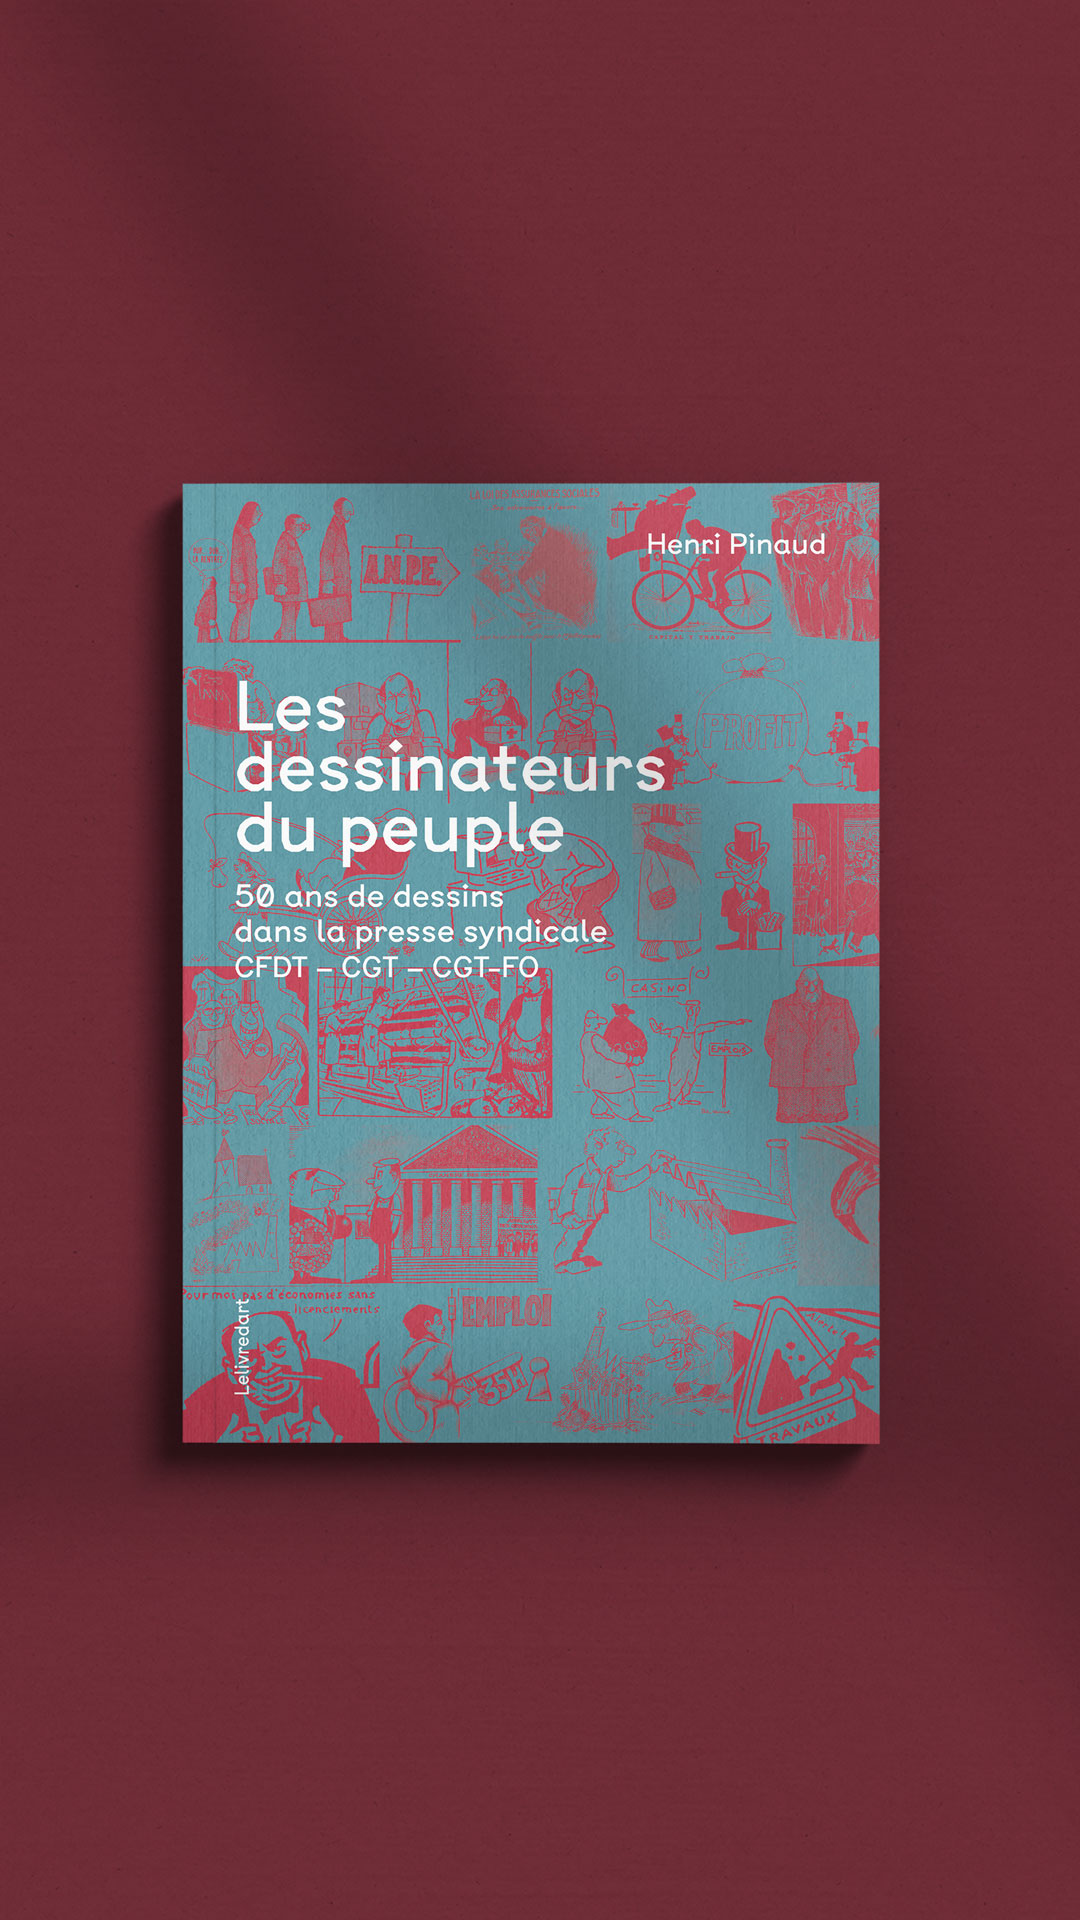 Dessinateurs du peuple